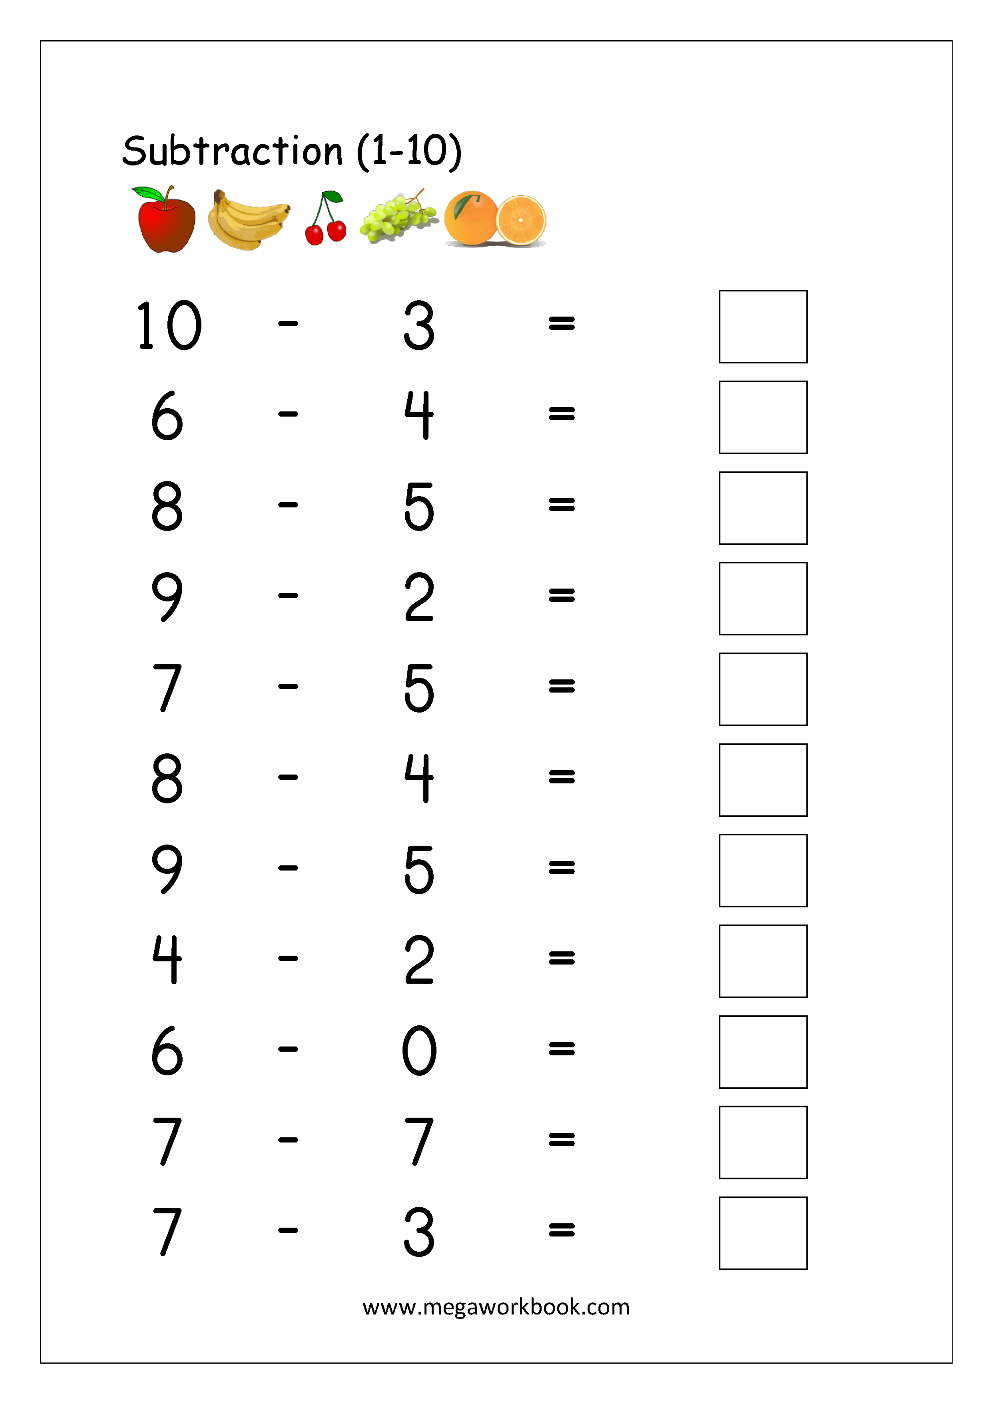 small resolution of Math Worksheet - Subtraction (1-10)   Math subtraction worksheets